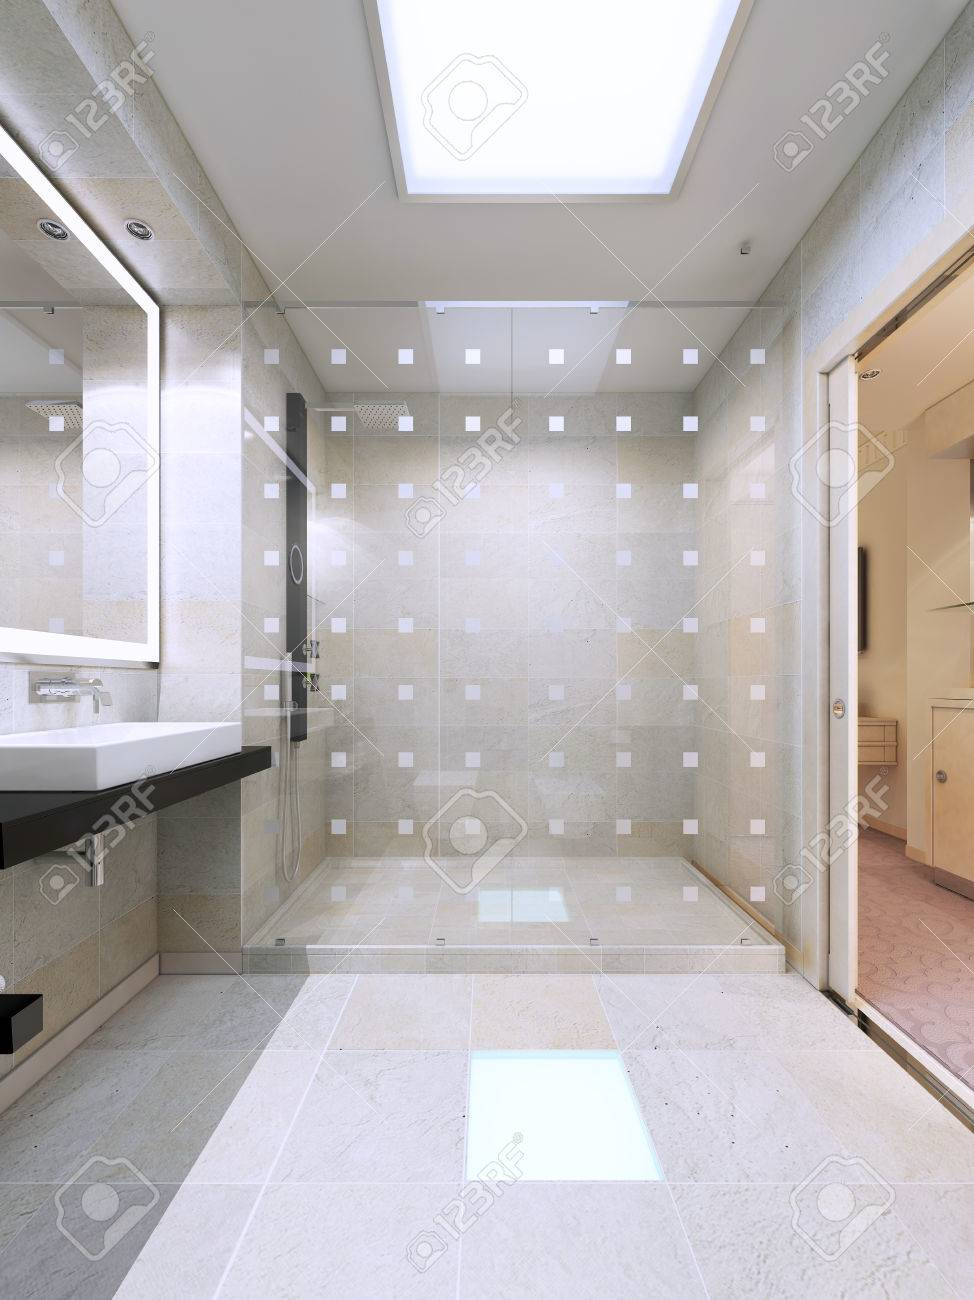 Glass Shower Doors Stock Photos. Royalty Free Glass Shower Doors Images